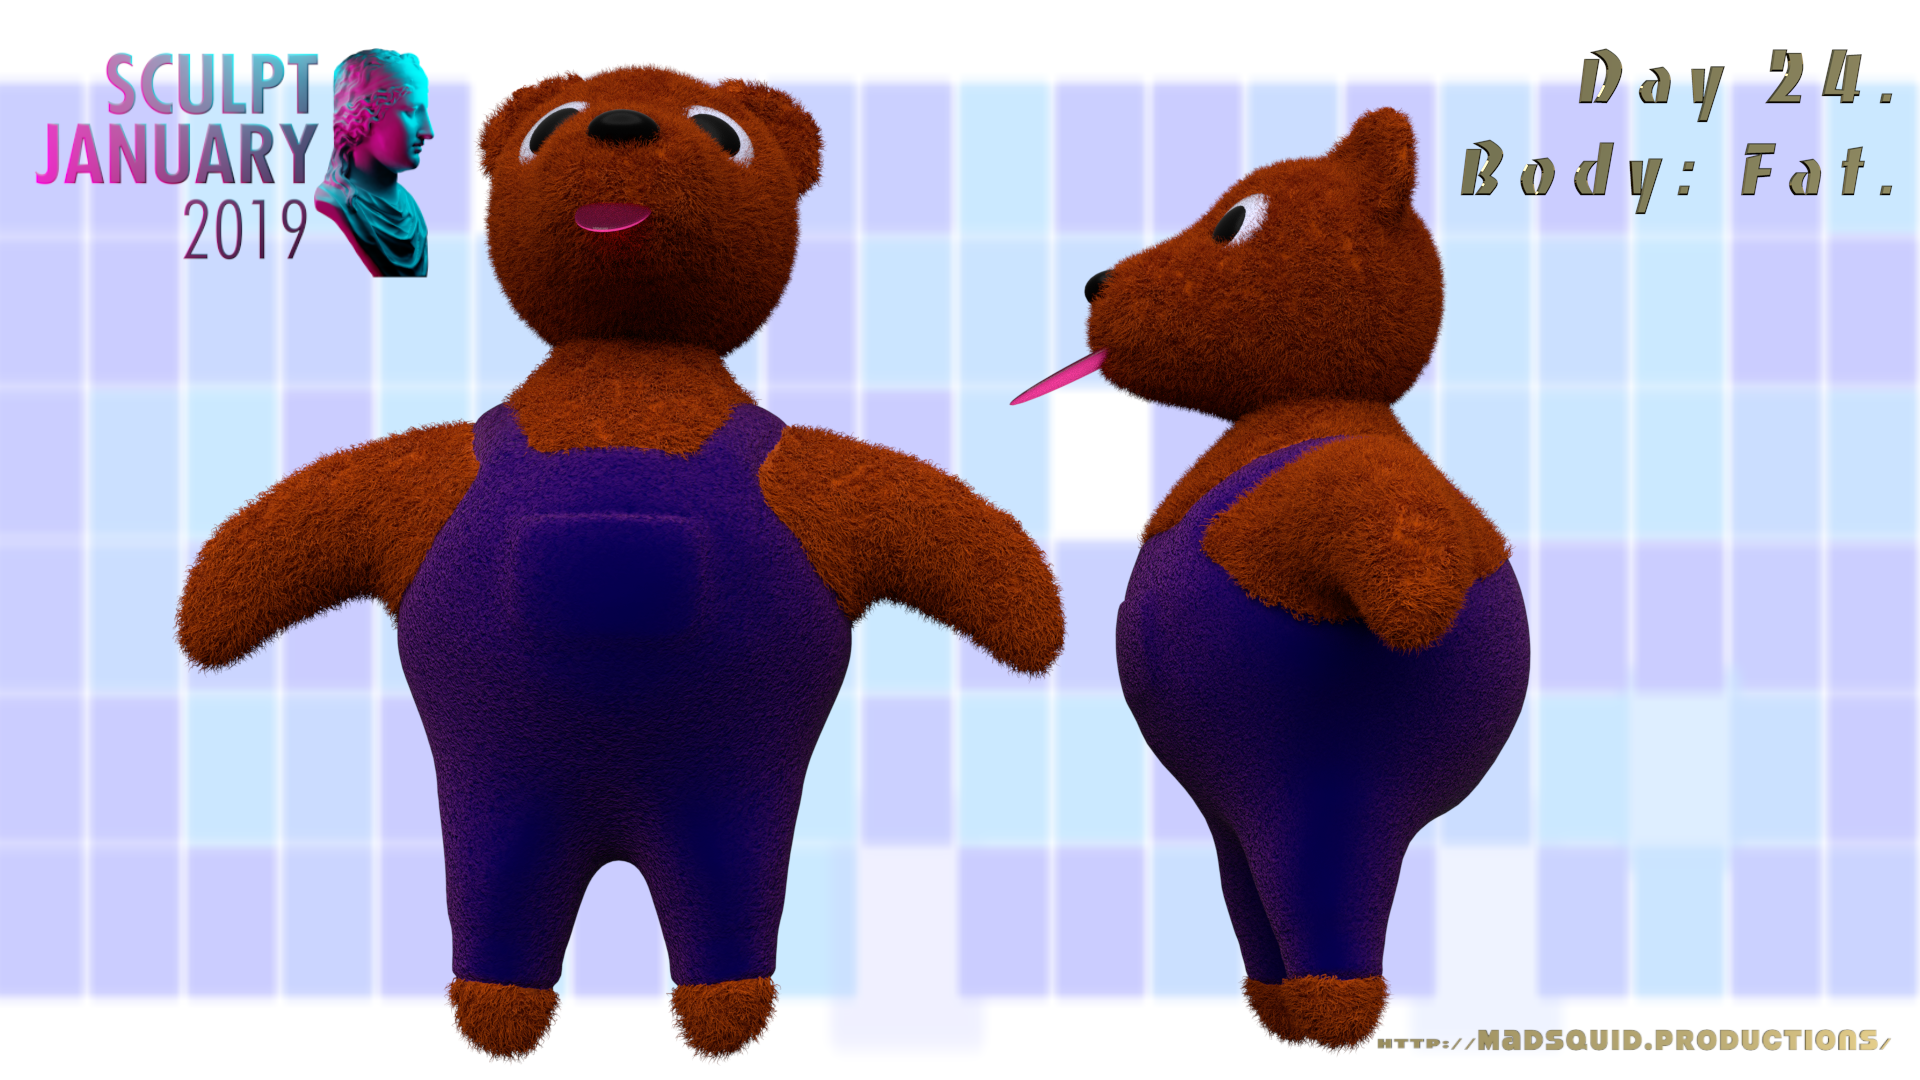 SculptJanuary19Day24BodyFatMSP.png